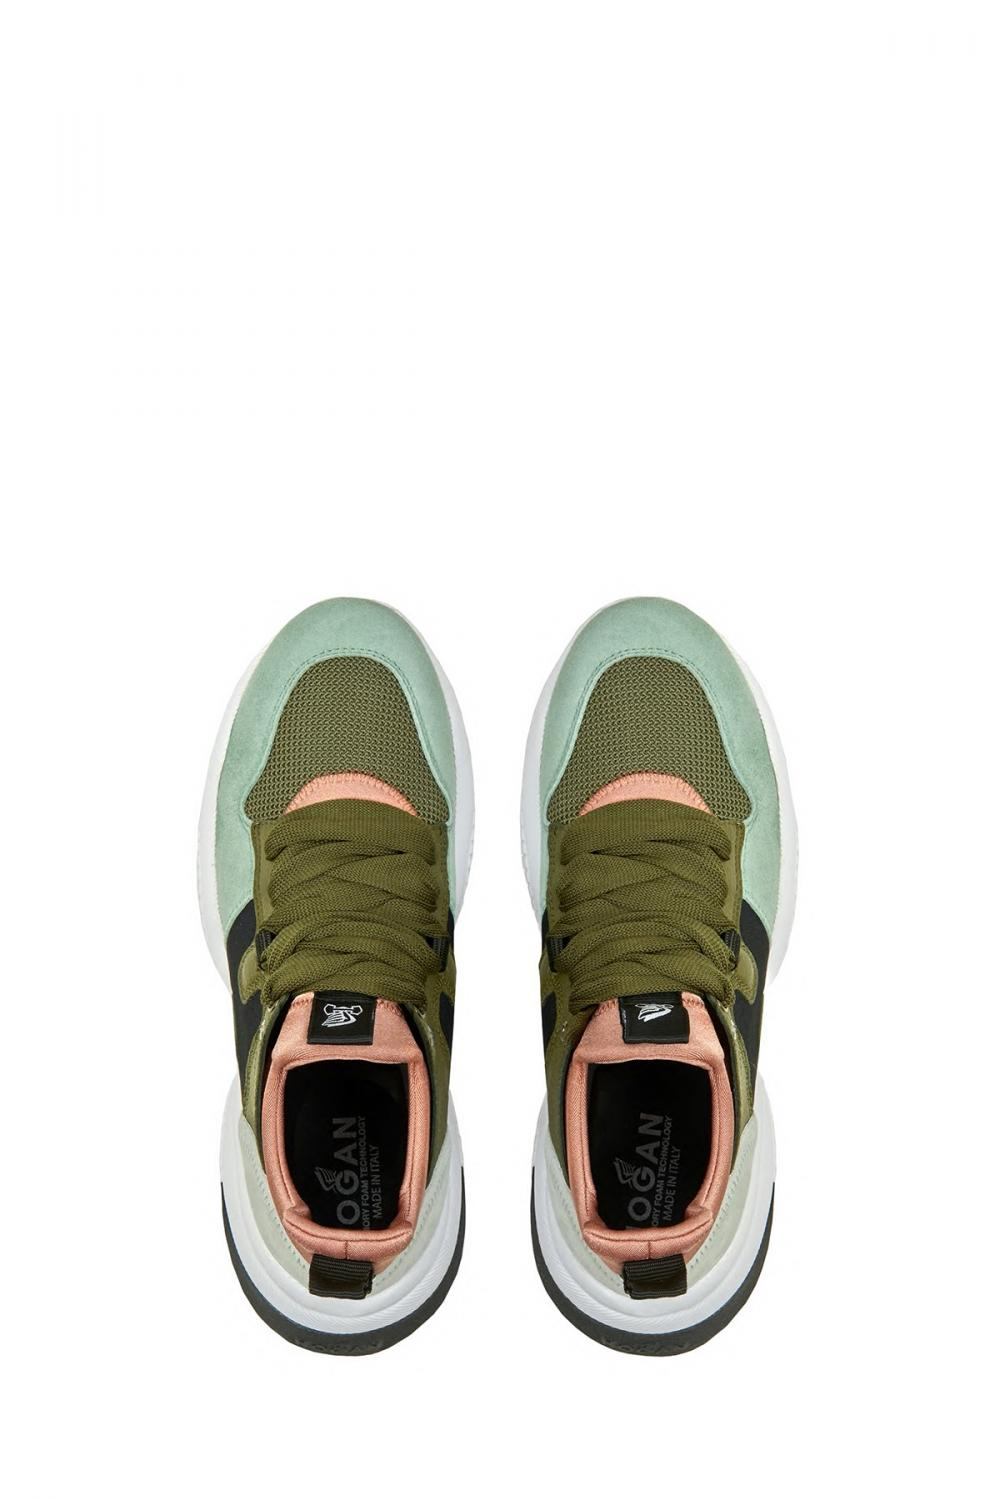 Hogan Damen Sneaker Interaction Slip On Olive 3